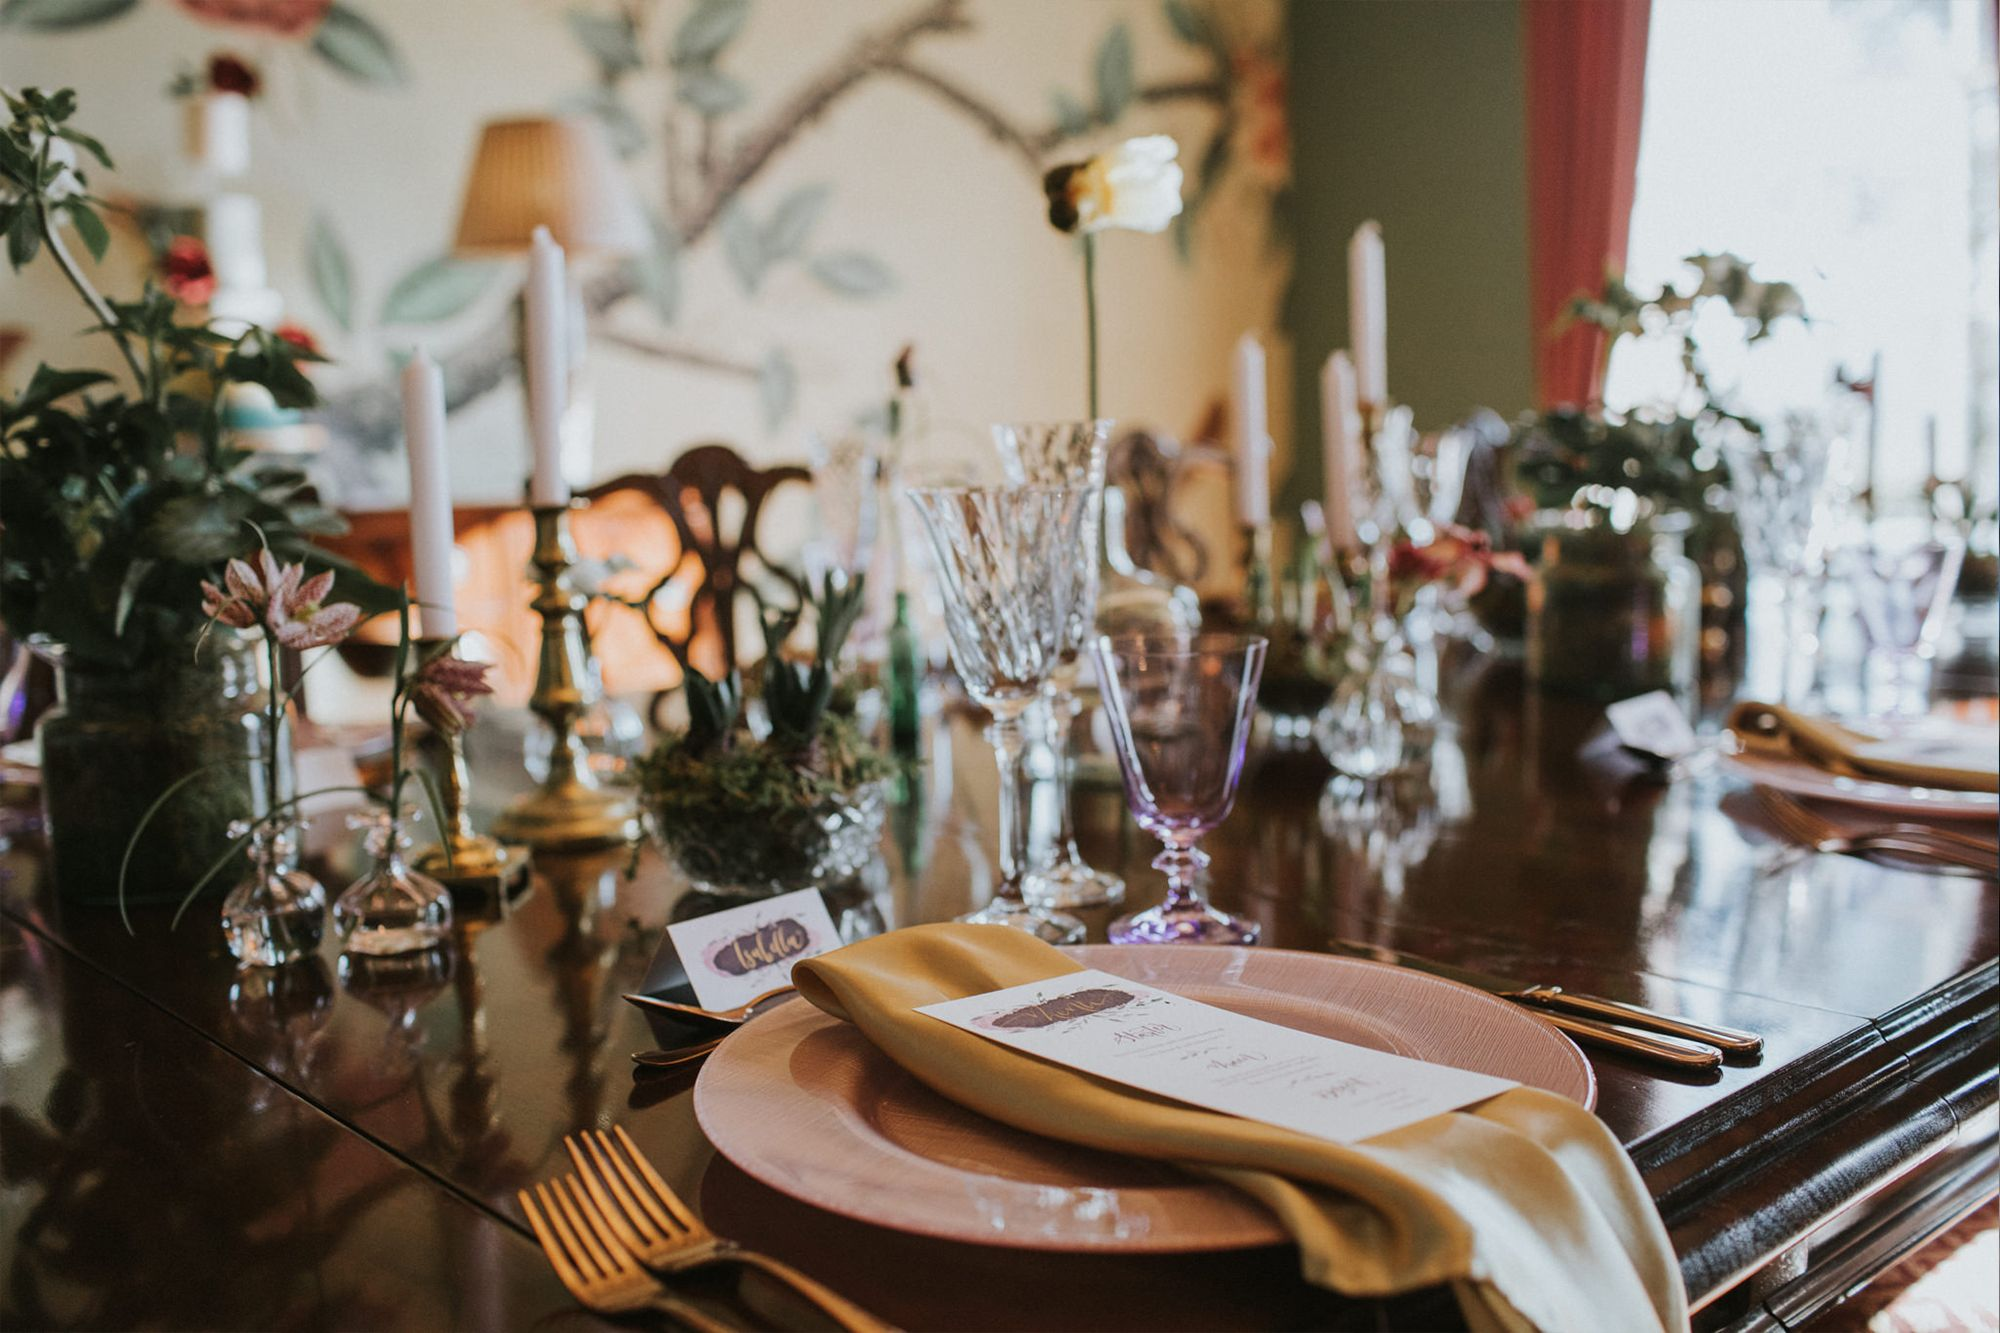 Dining Room at Garthmyl Hall. Photo by Rocksalt Photography. Delirium Calligraphy, wall mural ...